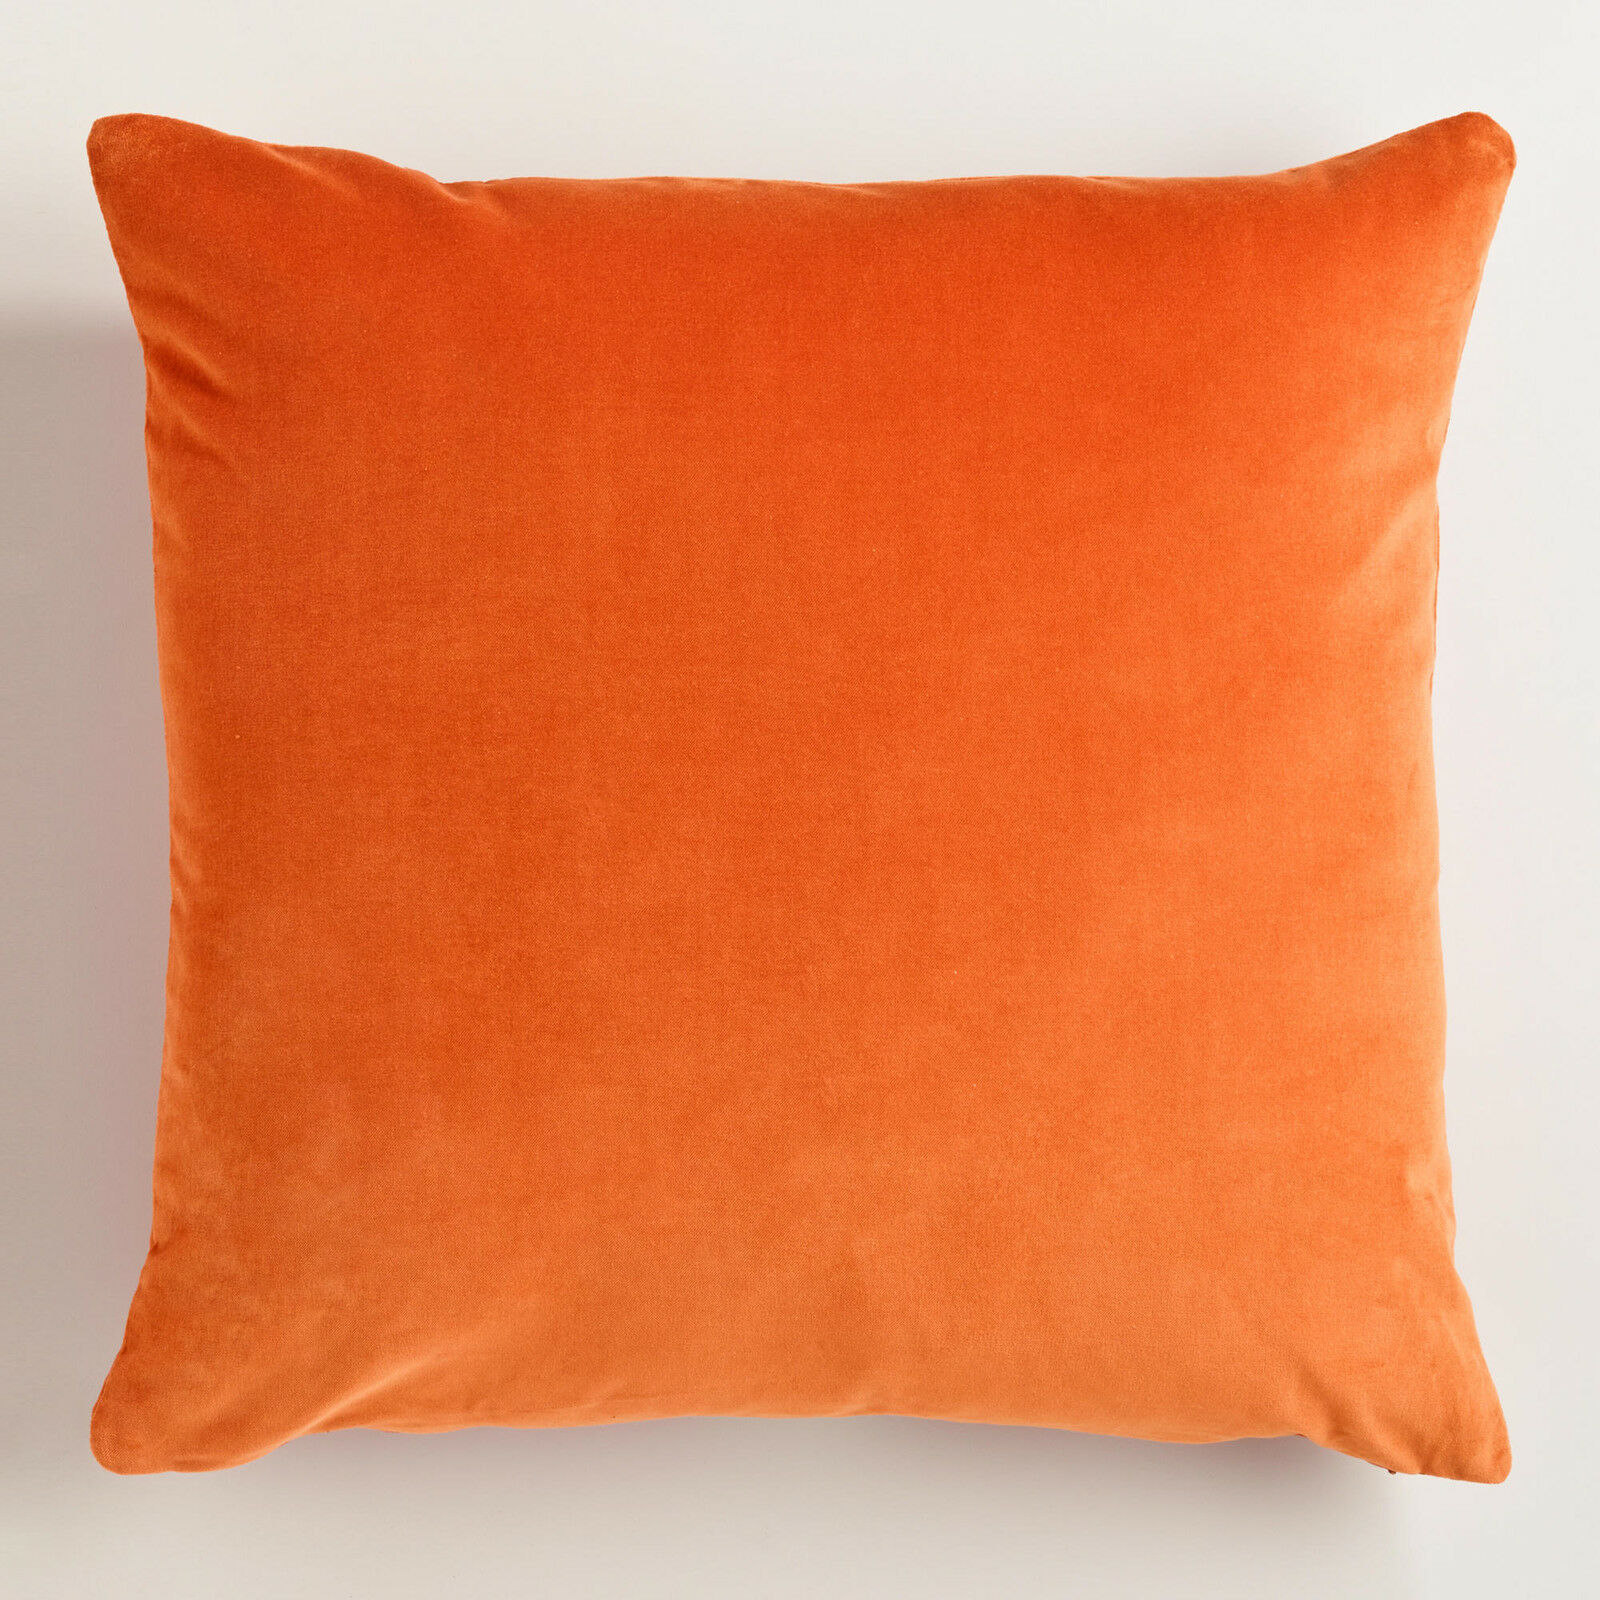 Decorative Pillow Guide : Your Guide to Buying the Right Throw Pillows for Your Couch eBay